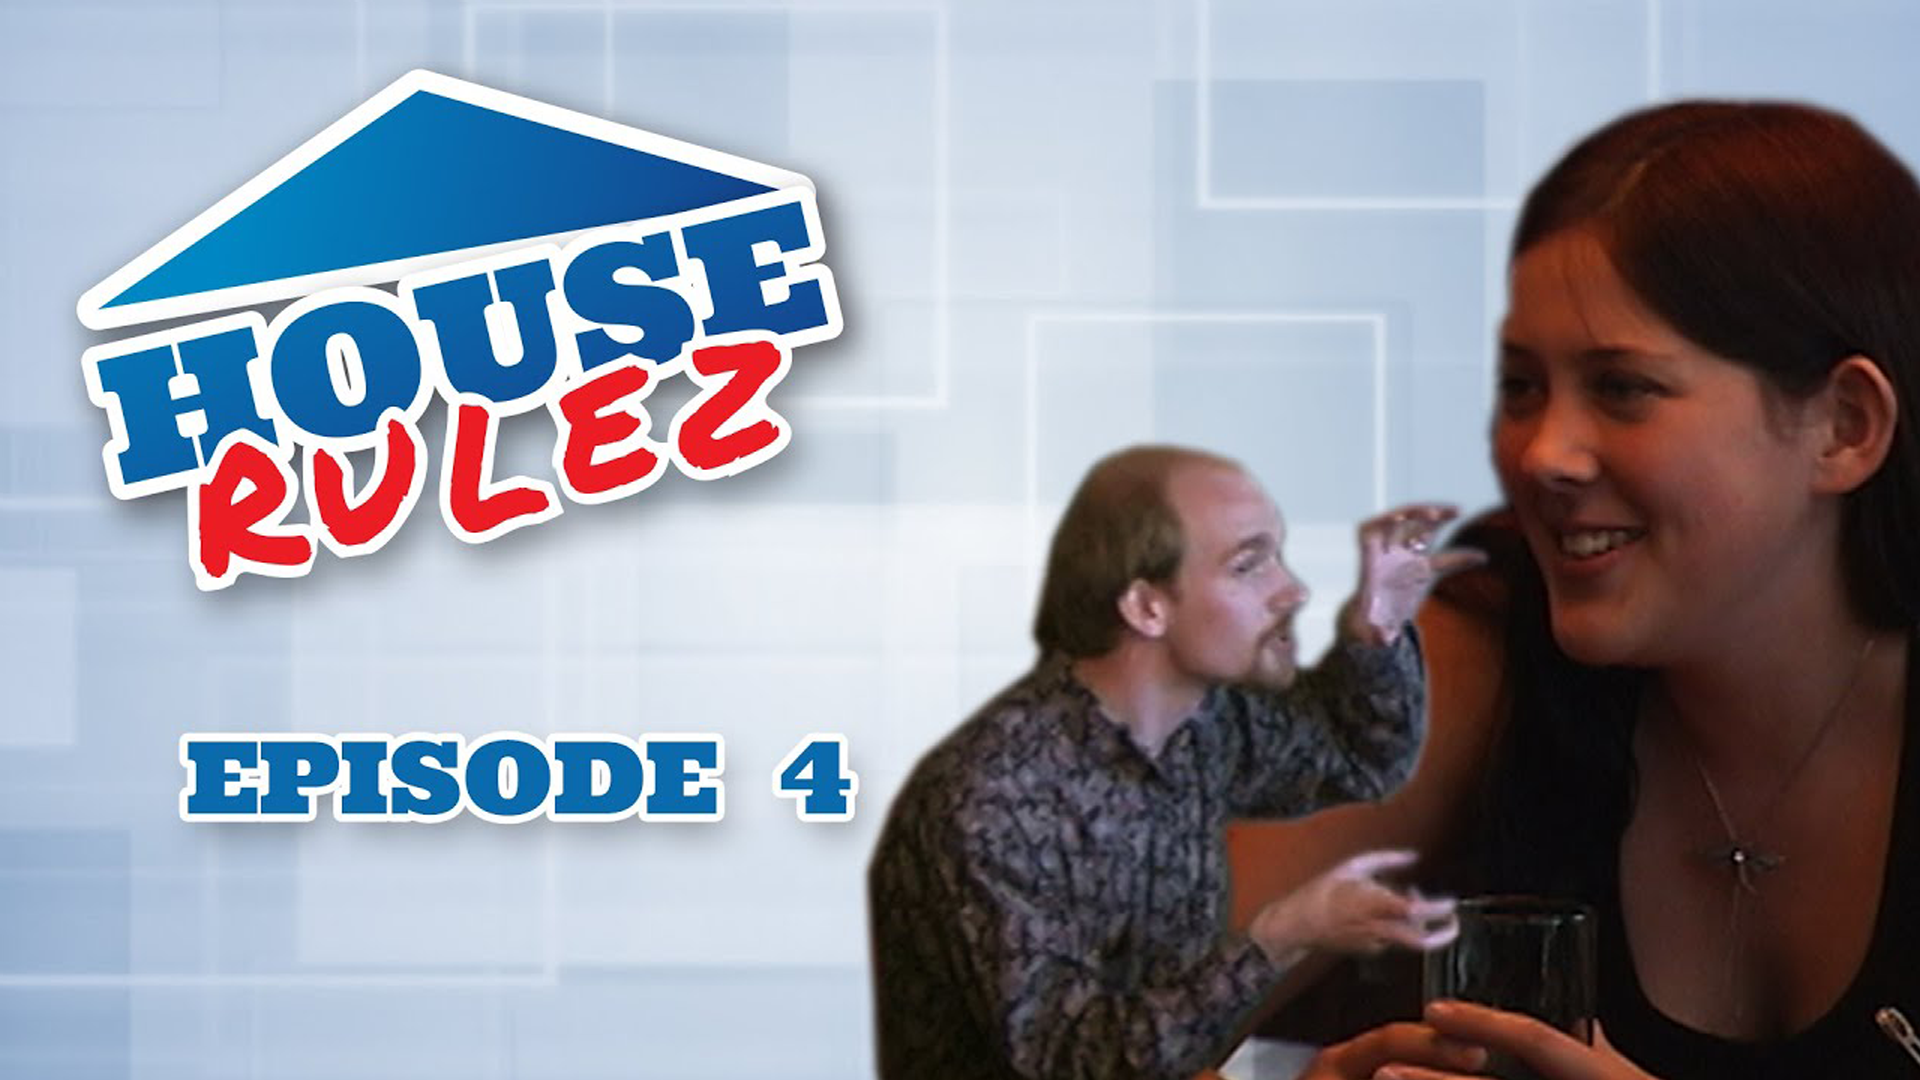 House Rulez Episode 4